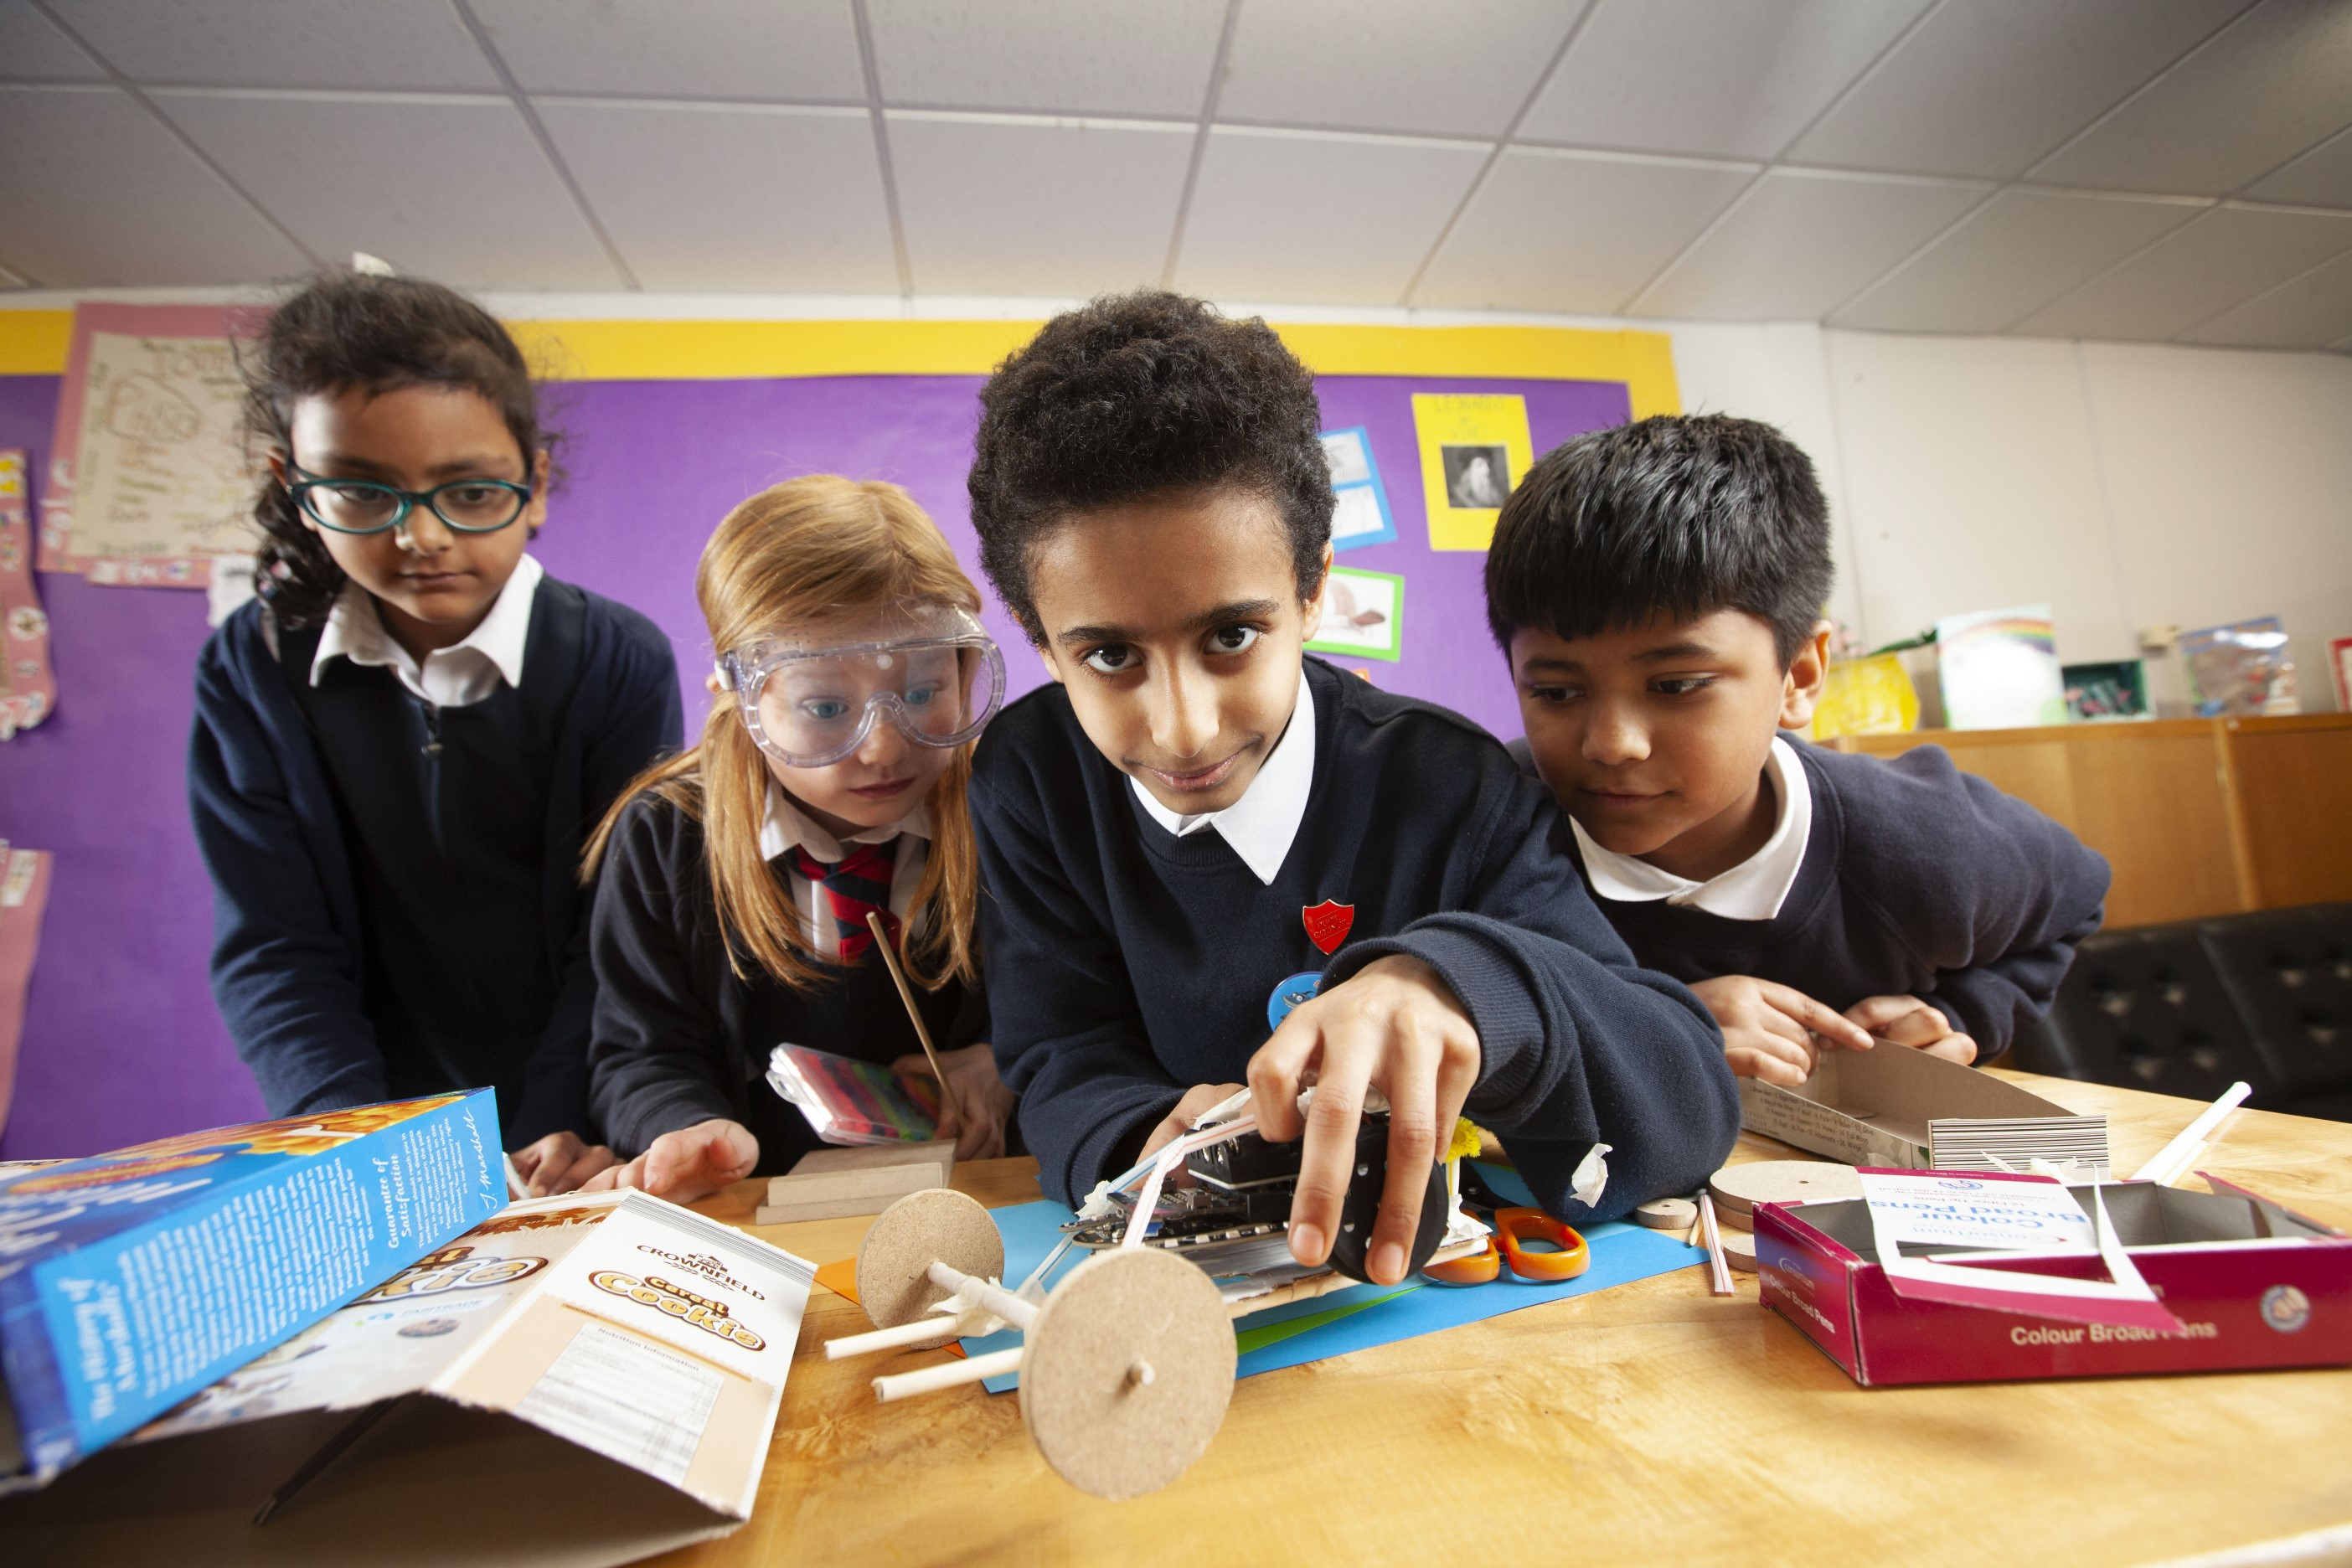 £100K in funding awarded to help inspire Scotland's next generation of digital experts